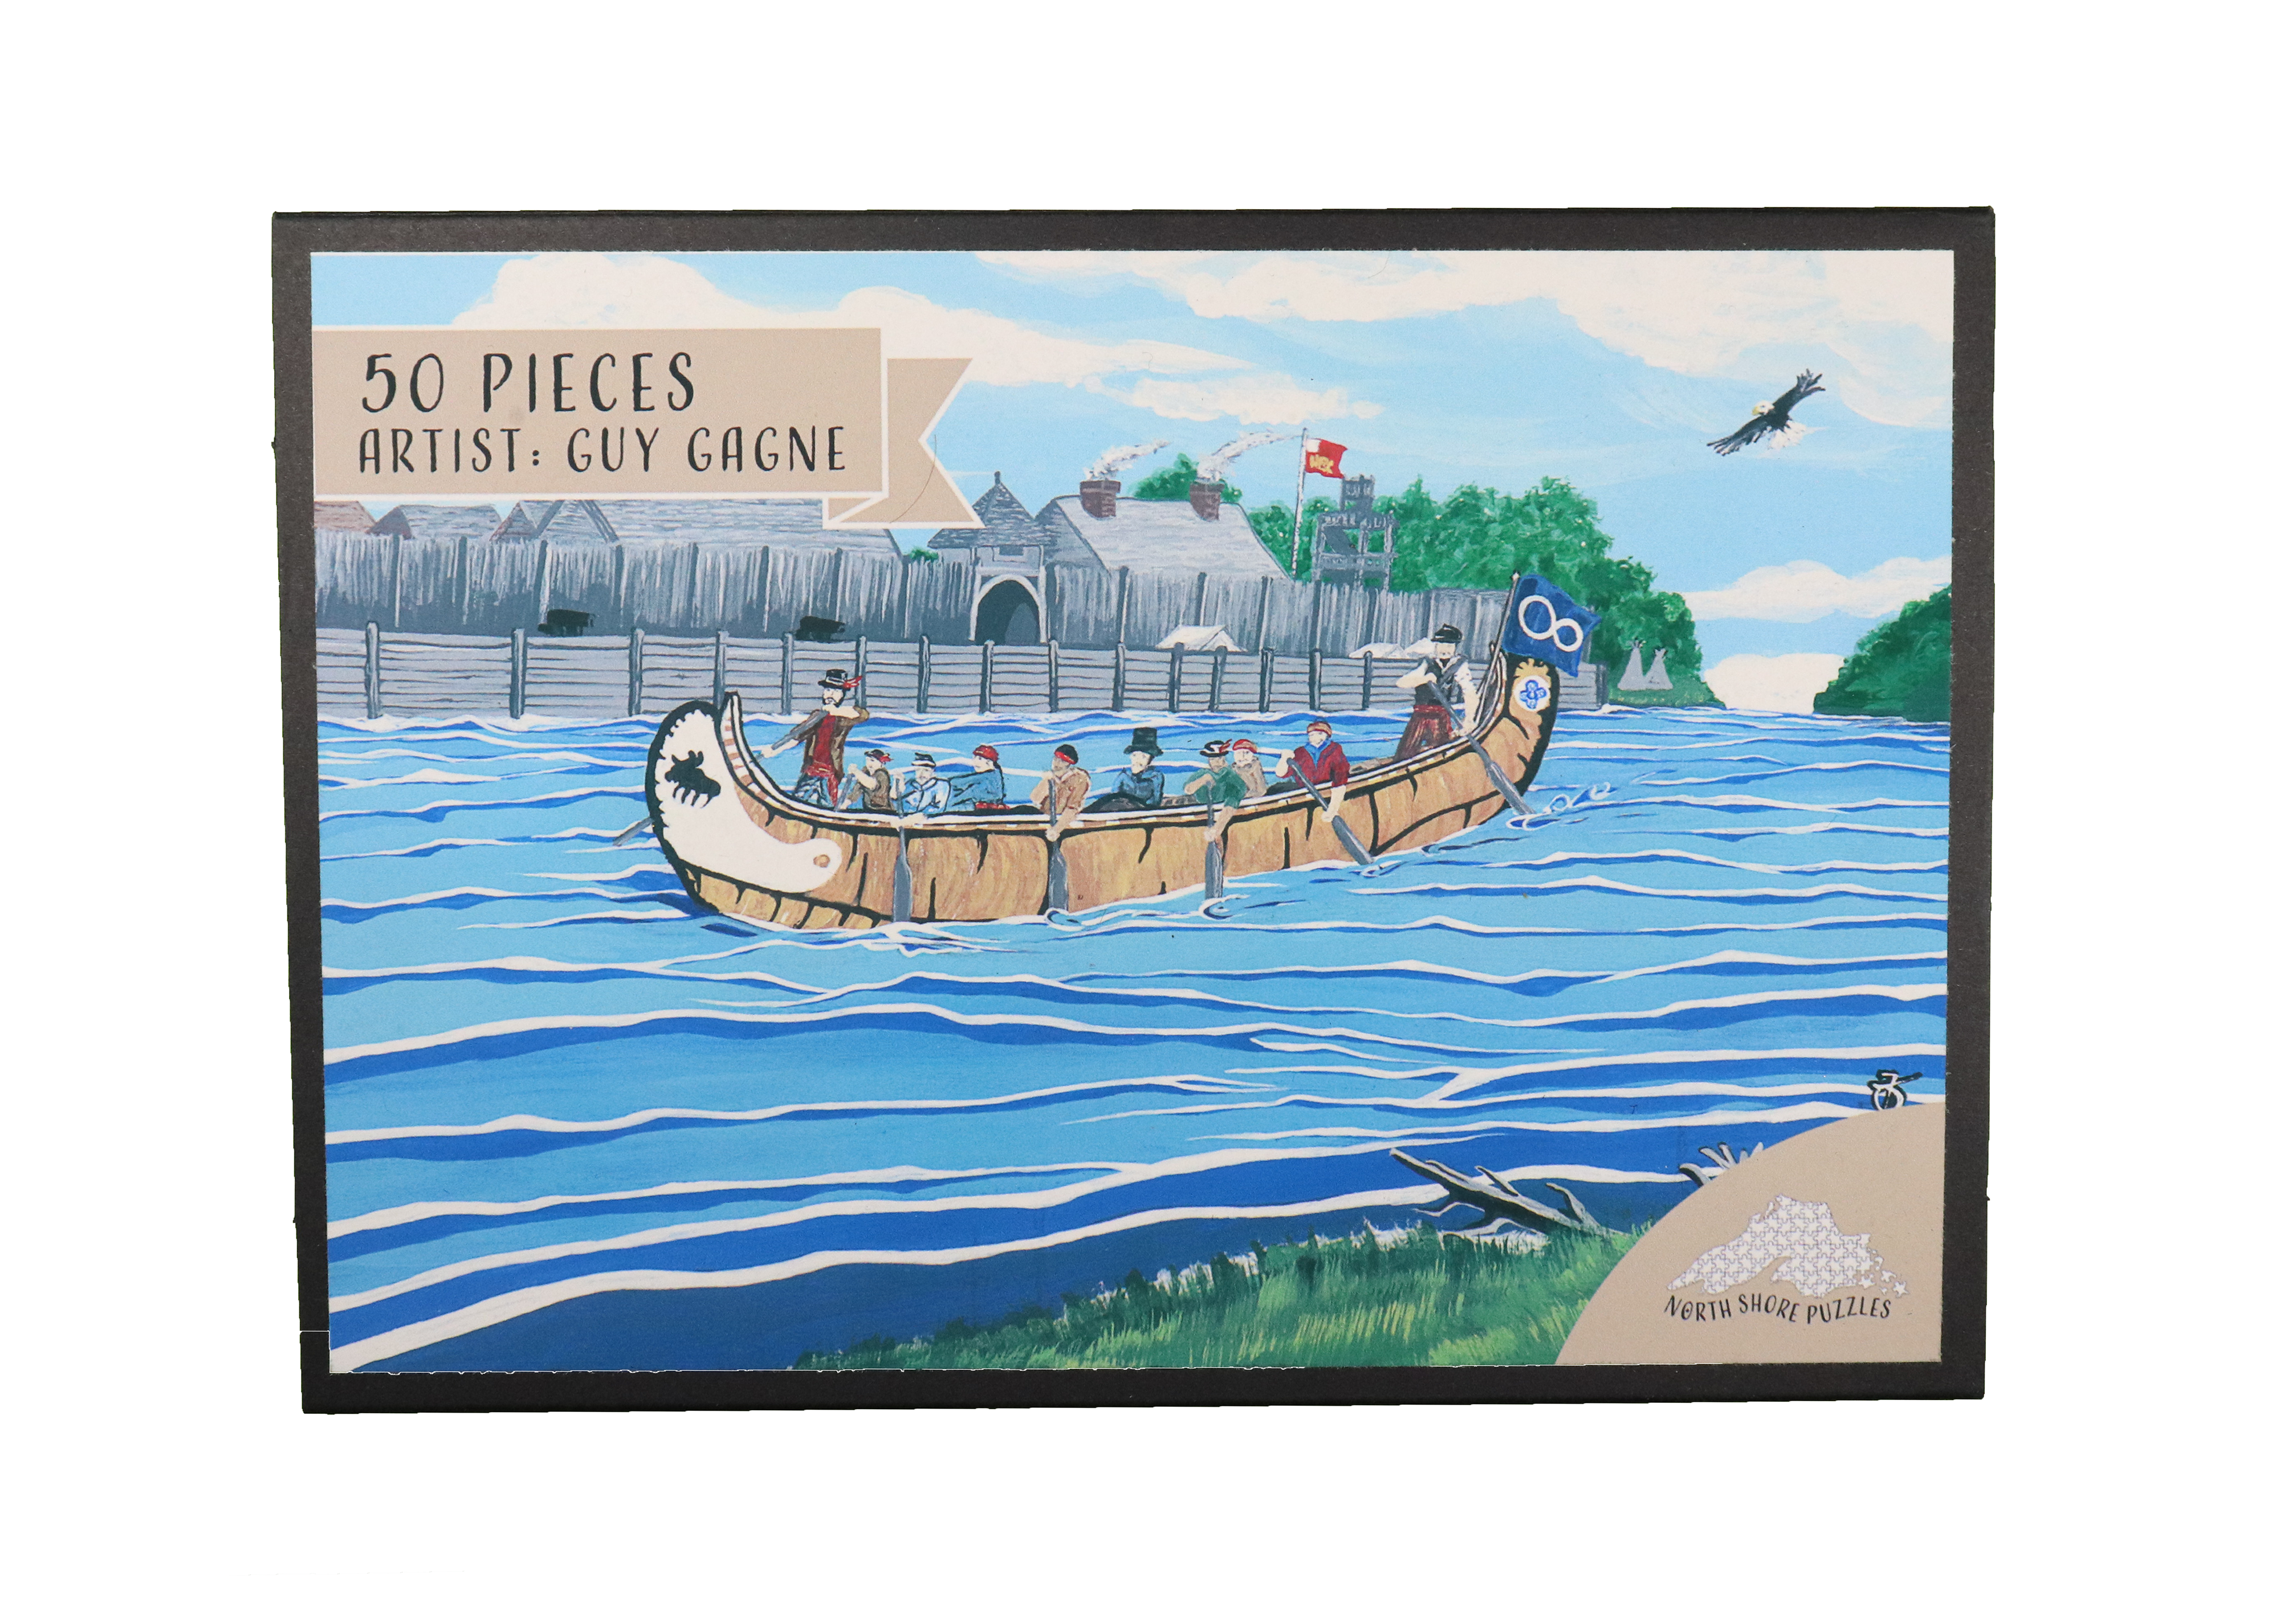 Old Fort William puzzle box in collaboration with Metis artist Guy Gagne by North Shore Puzzles